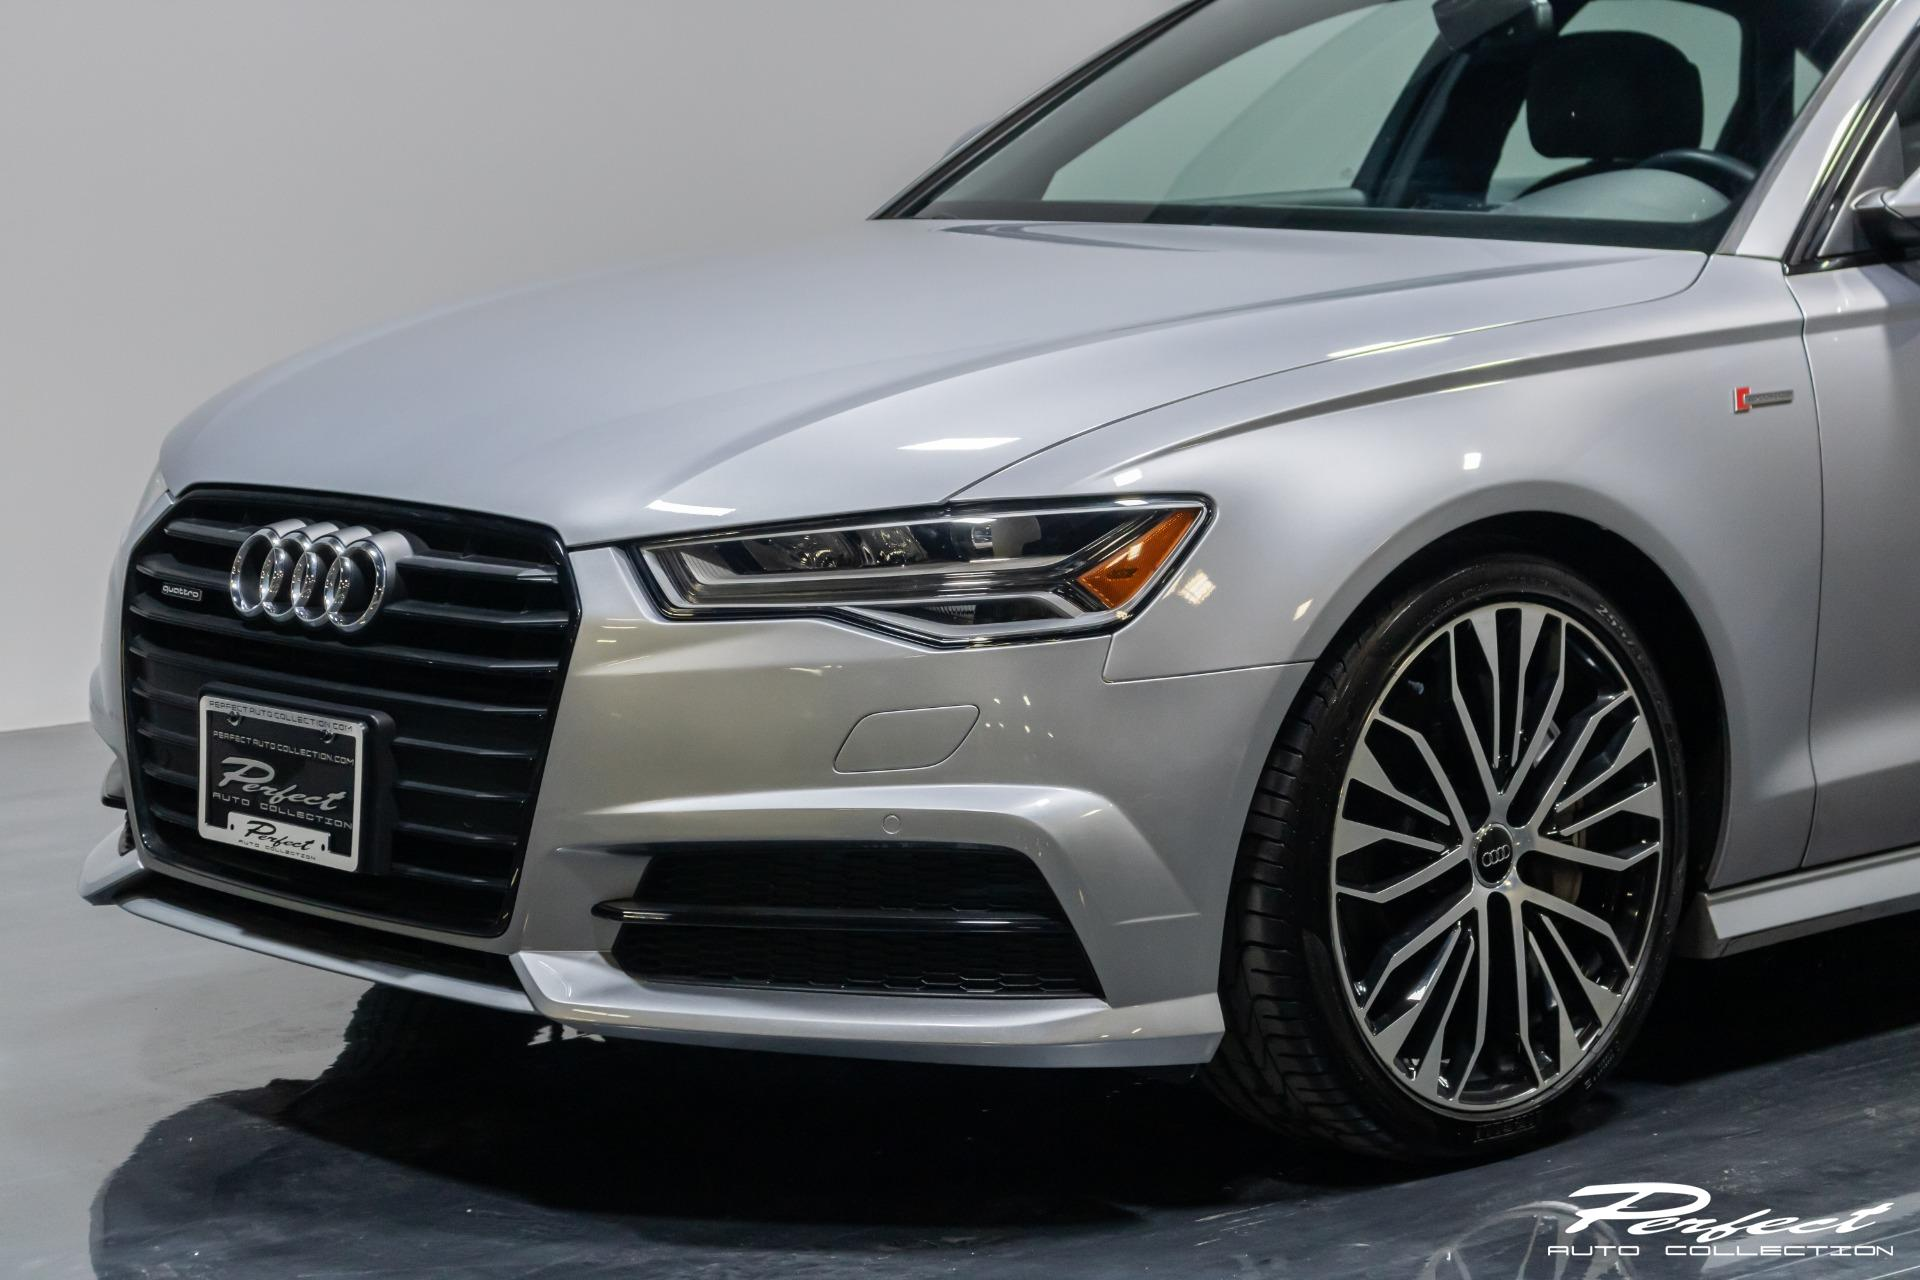 Used 2017 Audi A6 3.0T quattro Premium Plus for sale Sold at Perfect Auto Collection in Akron OH 44310 3